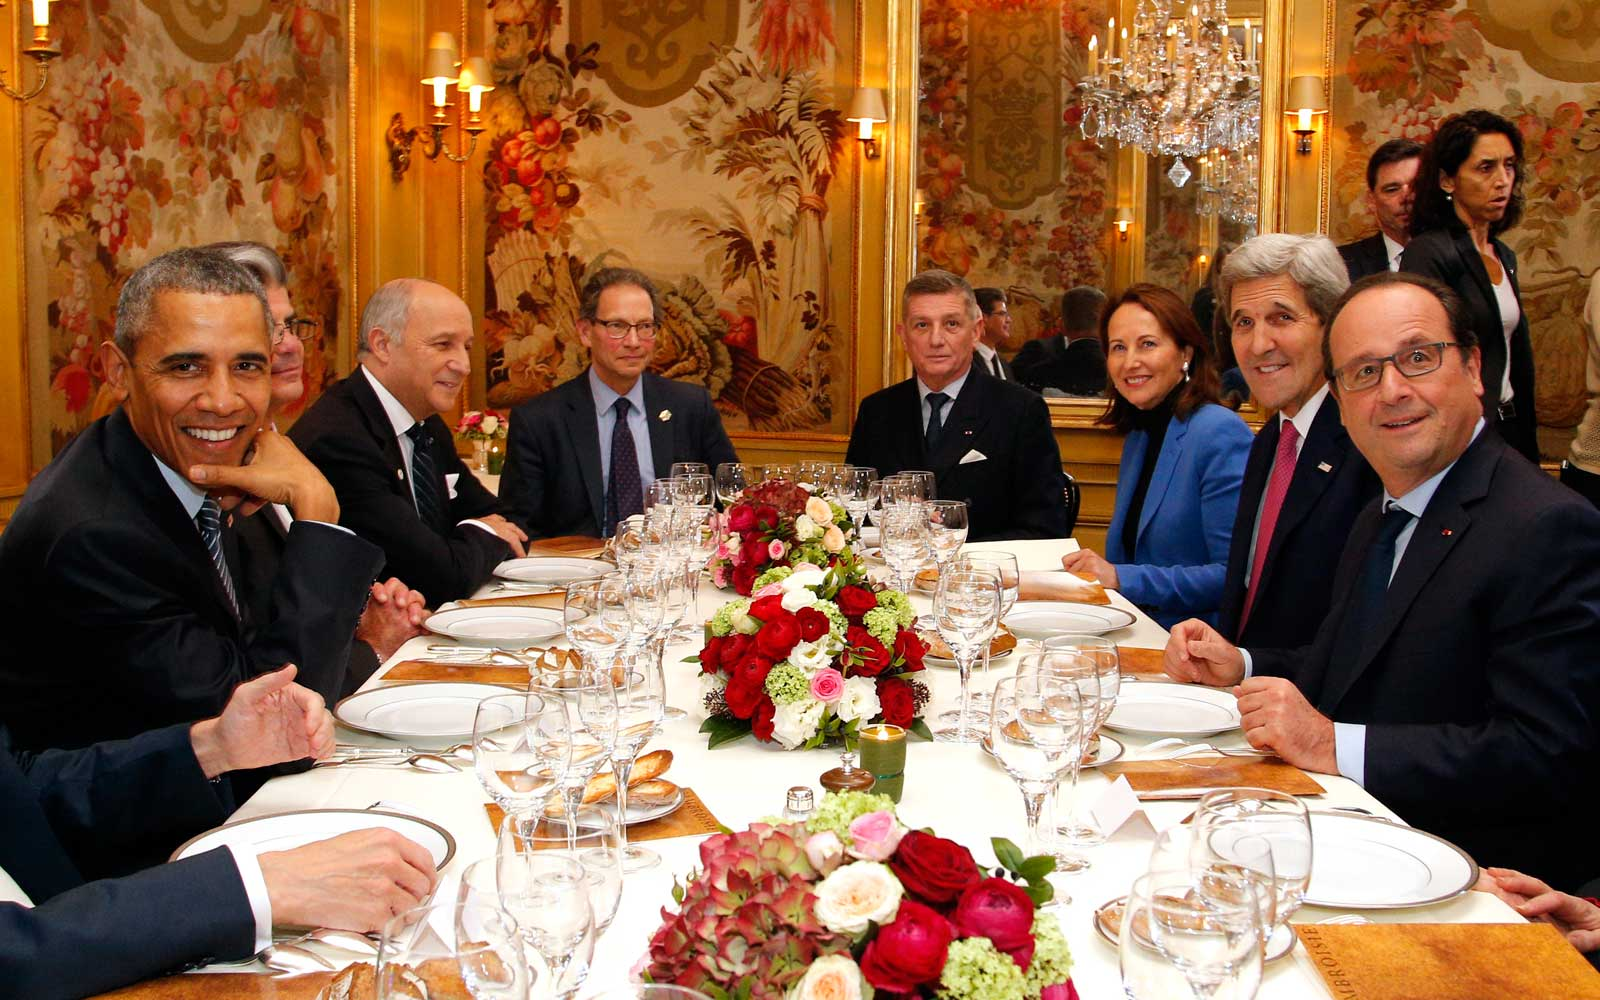 President Barack Obama (L) and French President Francois Hollande (R) have dinner at the Ambroisie restaurant in Paris